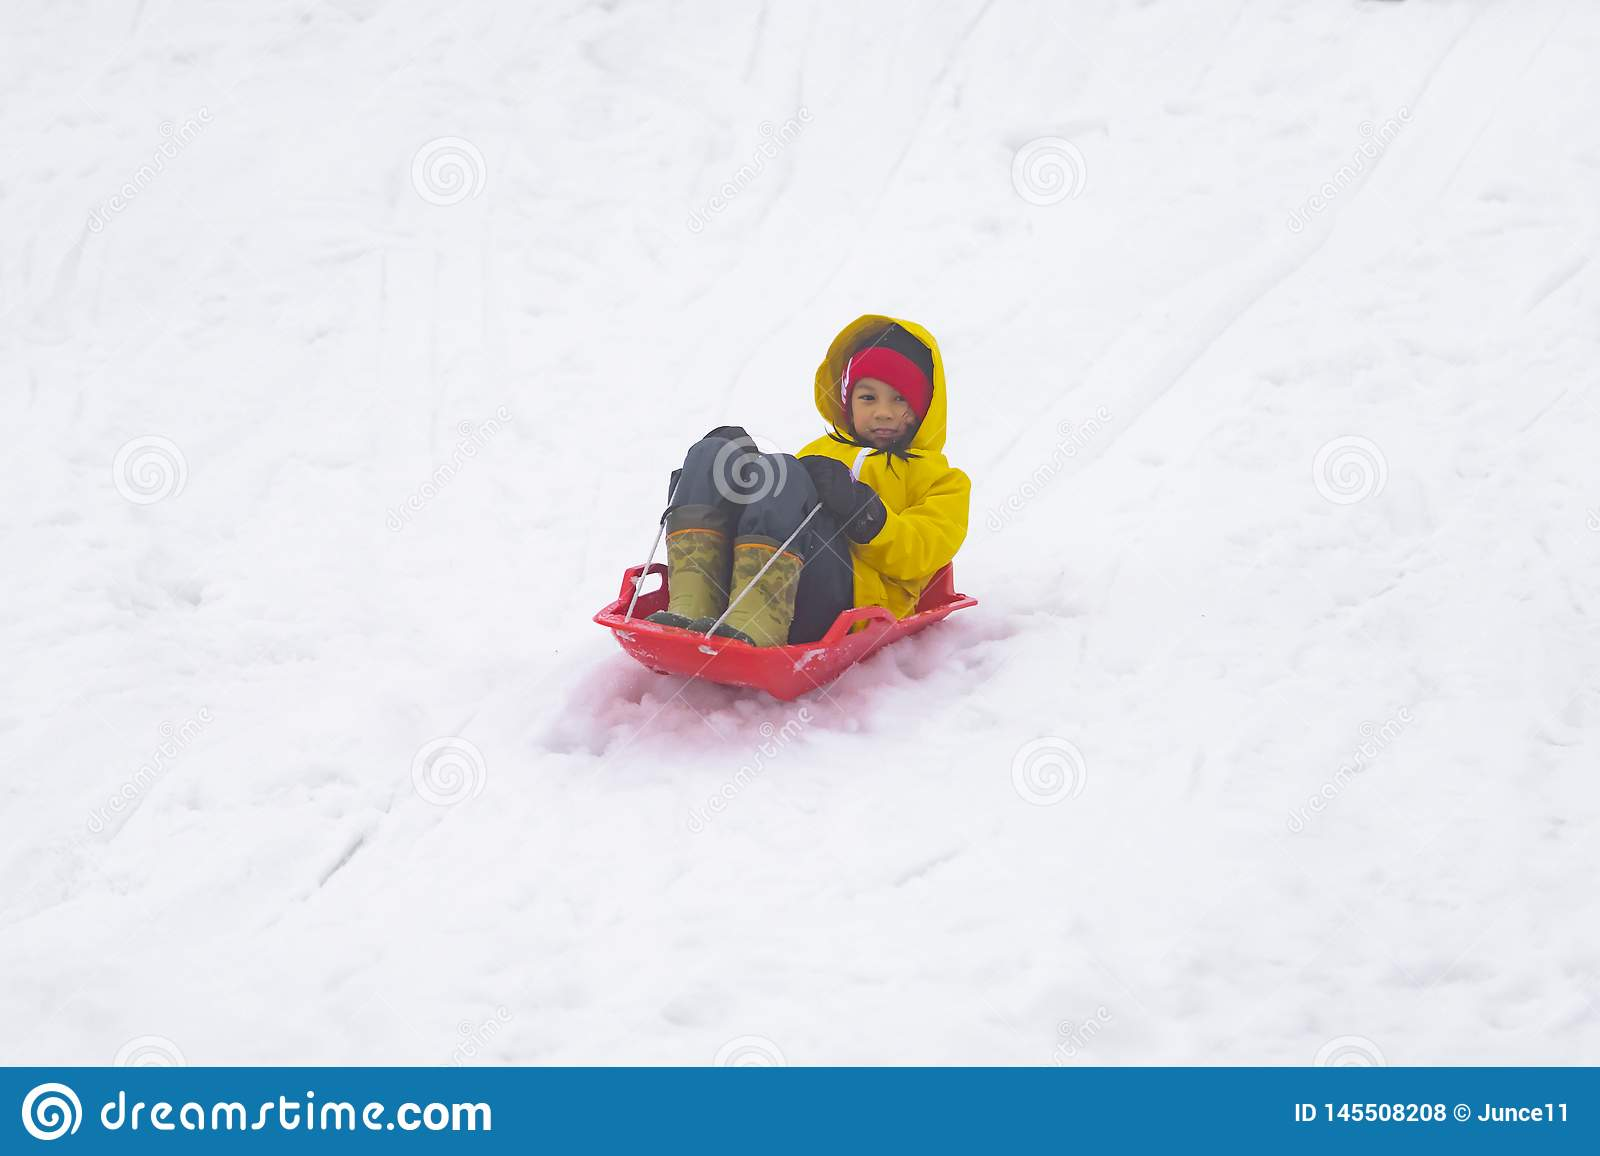 Japanese girl is sliding down the snow sled in Gala Yuzawa Ski resort